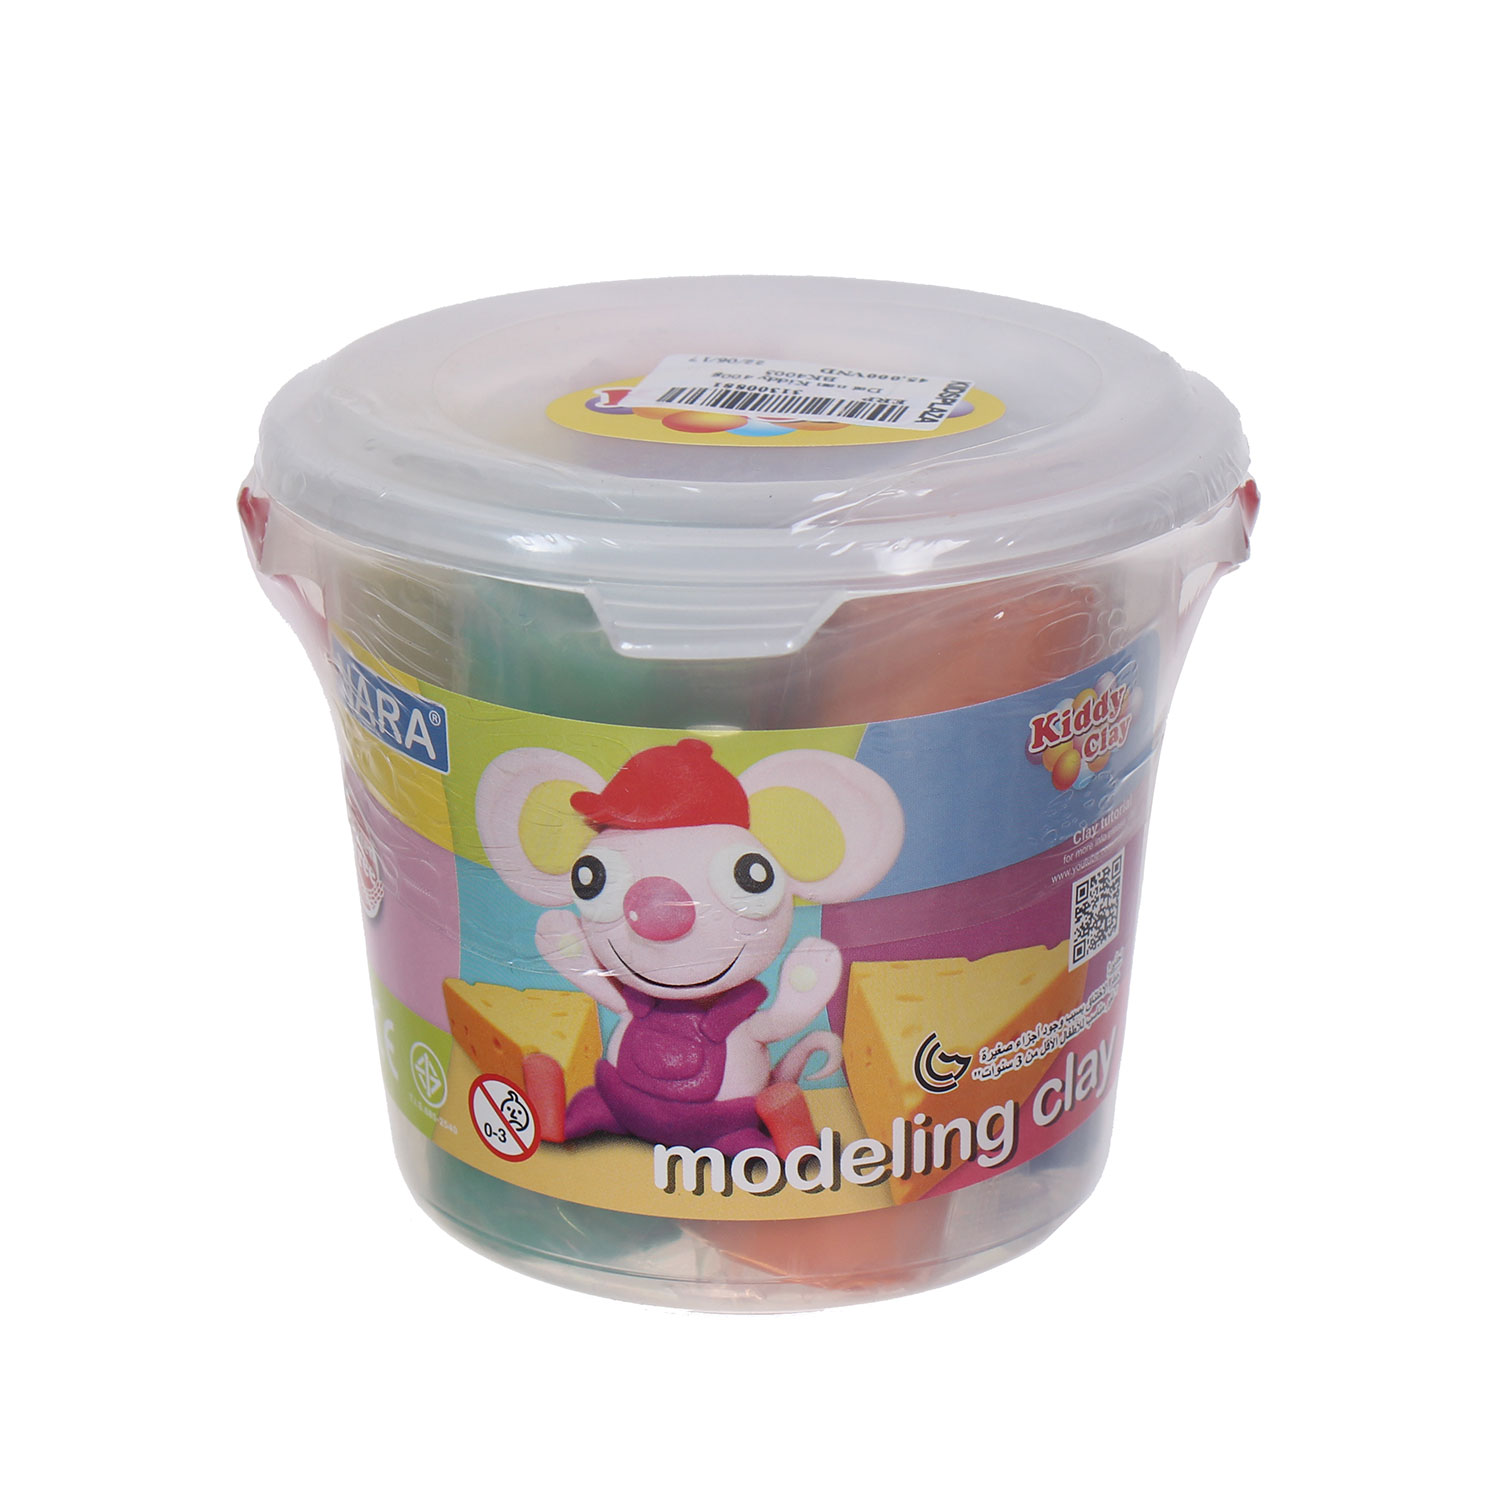 Kiddy Clay Modelling Clay Set of 5 Colors in Bucket